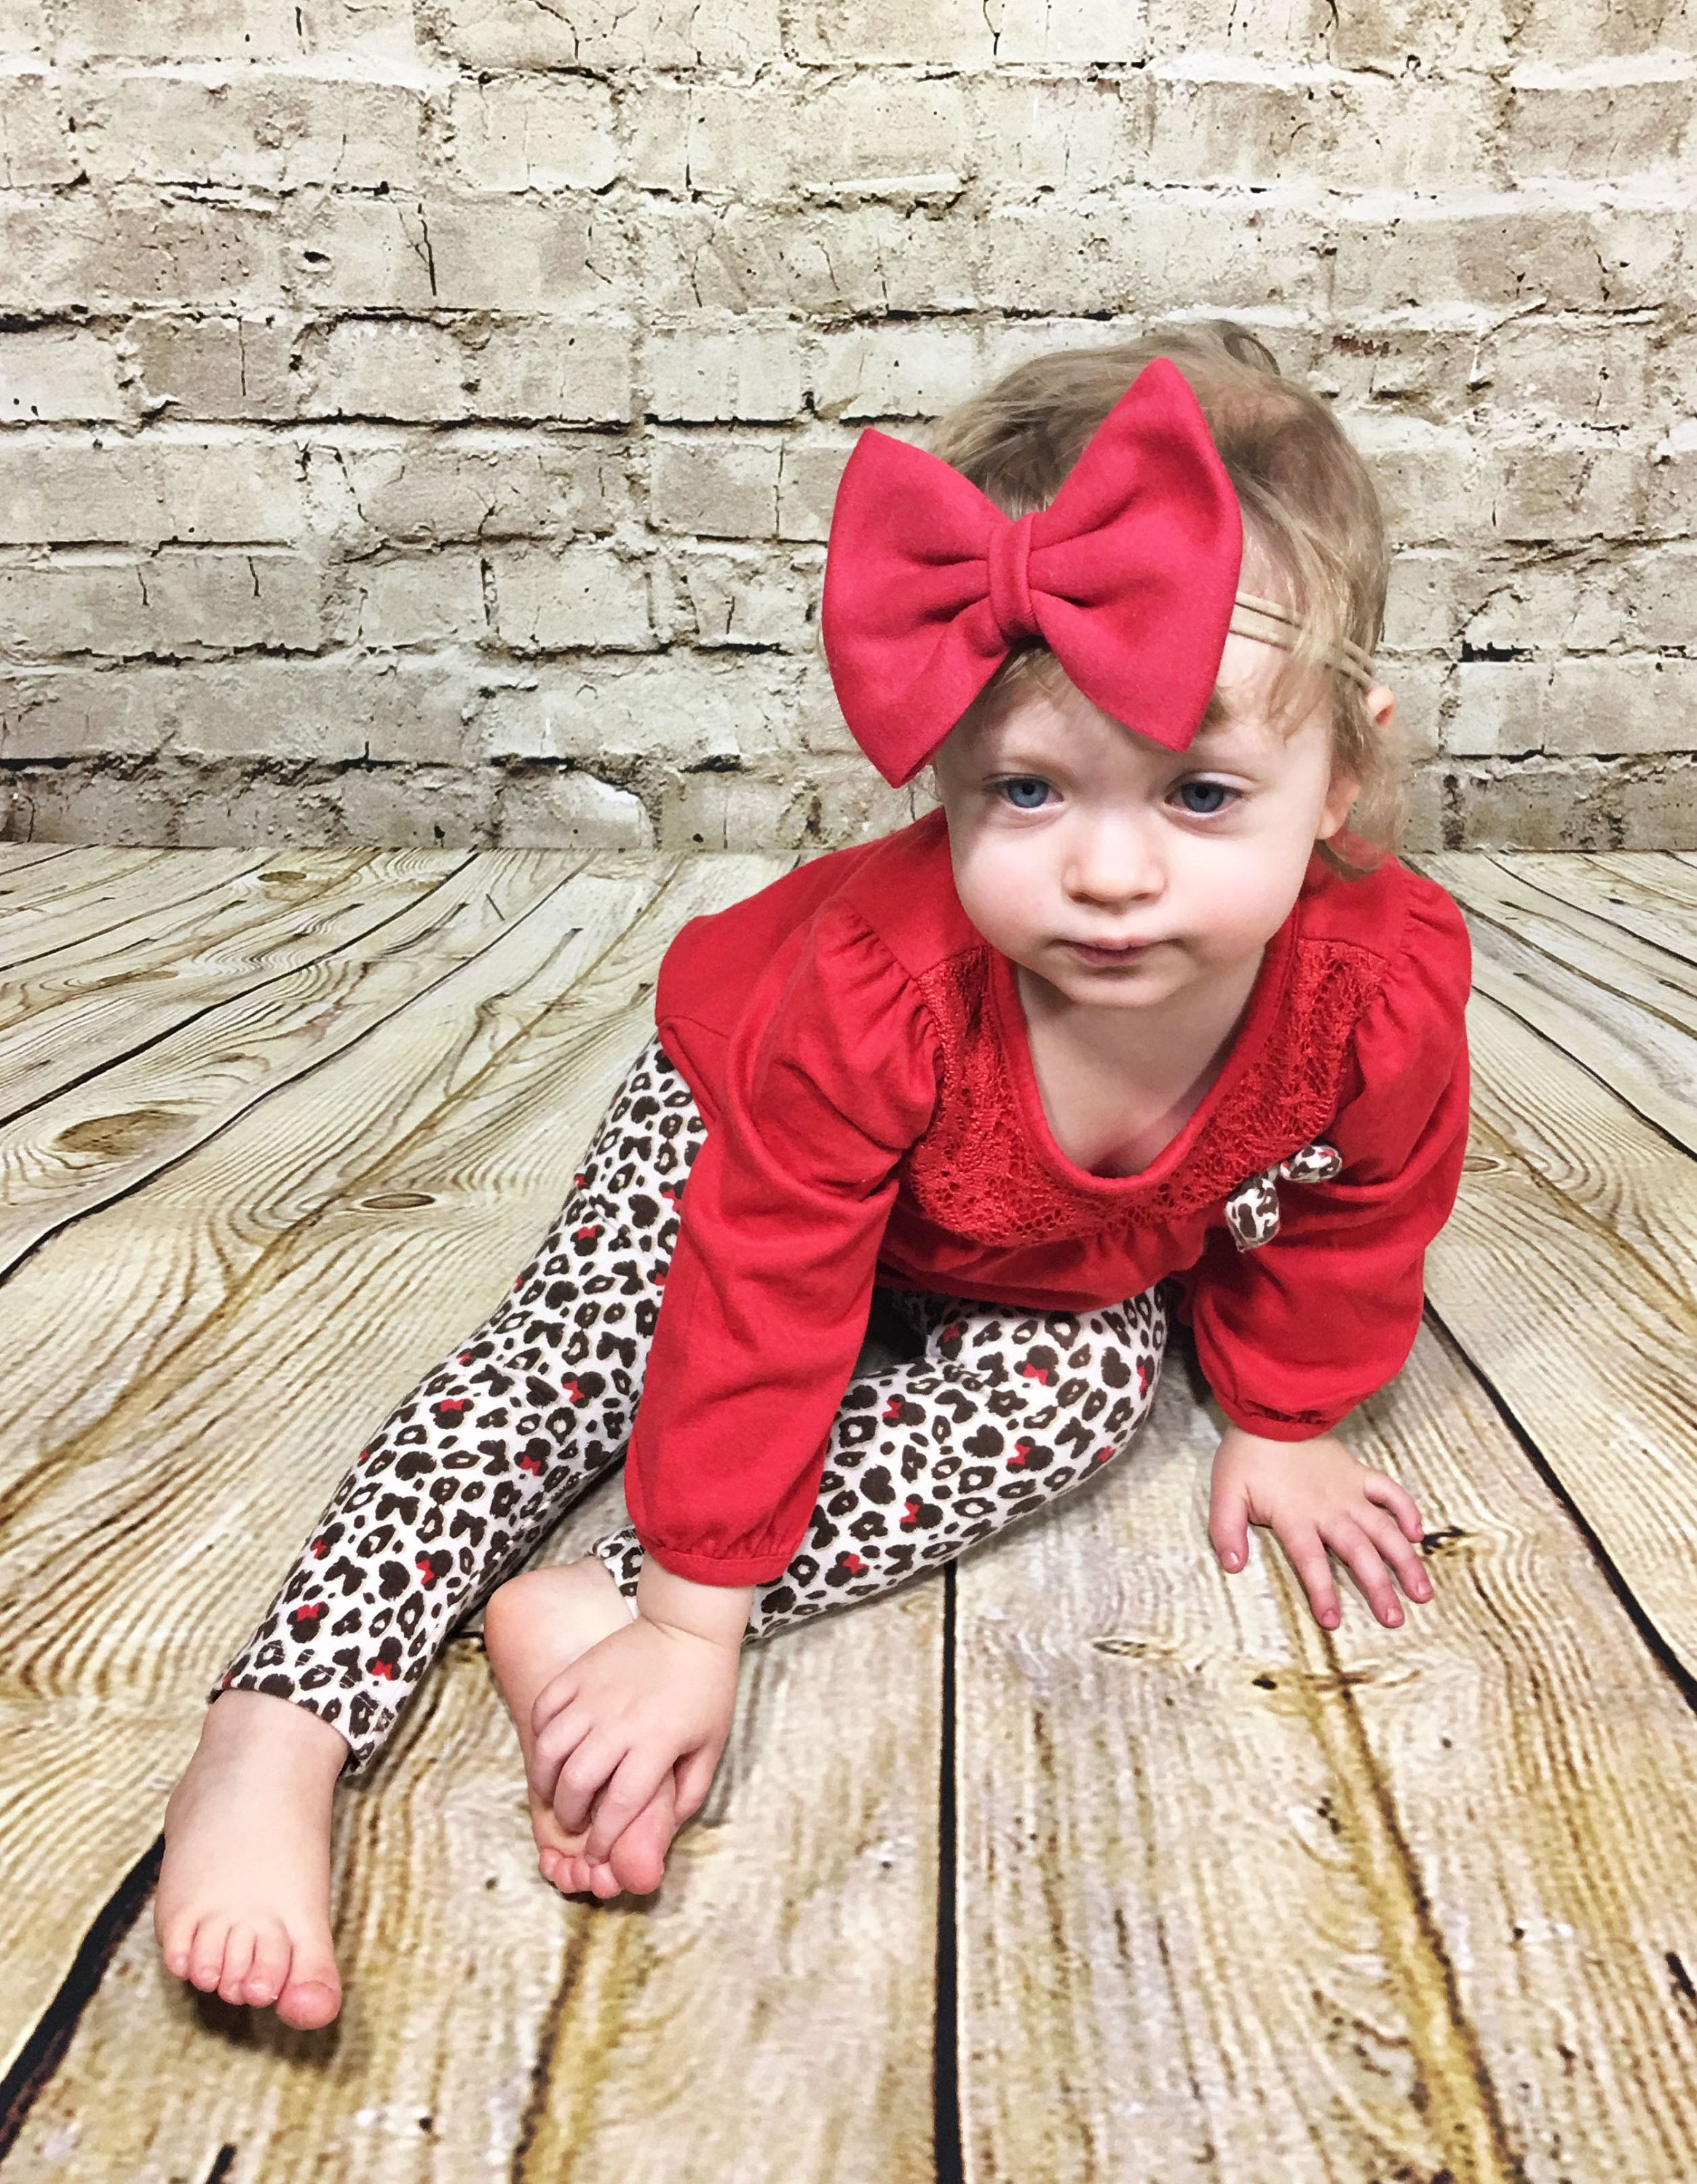 Red Bow Headband- Red Bow; Red Hair Bow; Red Nylon Headband; Baby Headband; Baby Nylon Headbands; Bow Headband; Big Bow Headband; Nylon Bows by SuVernBowtique on Etsy